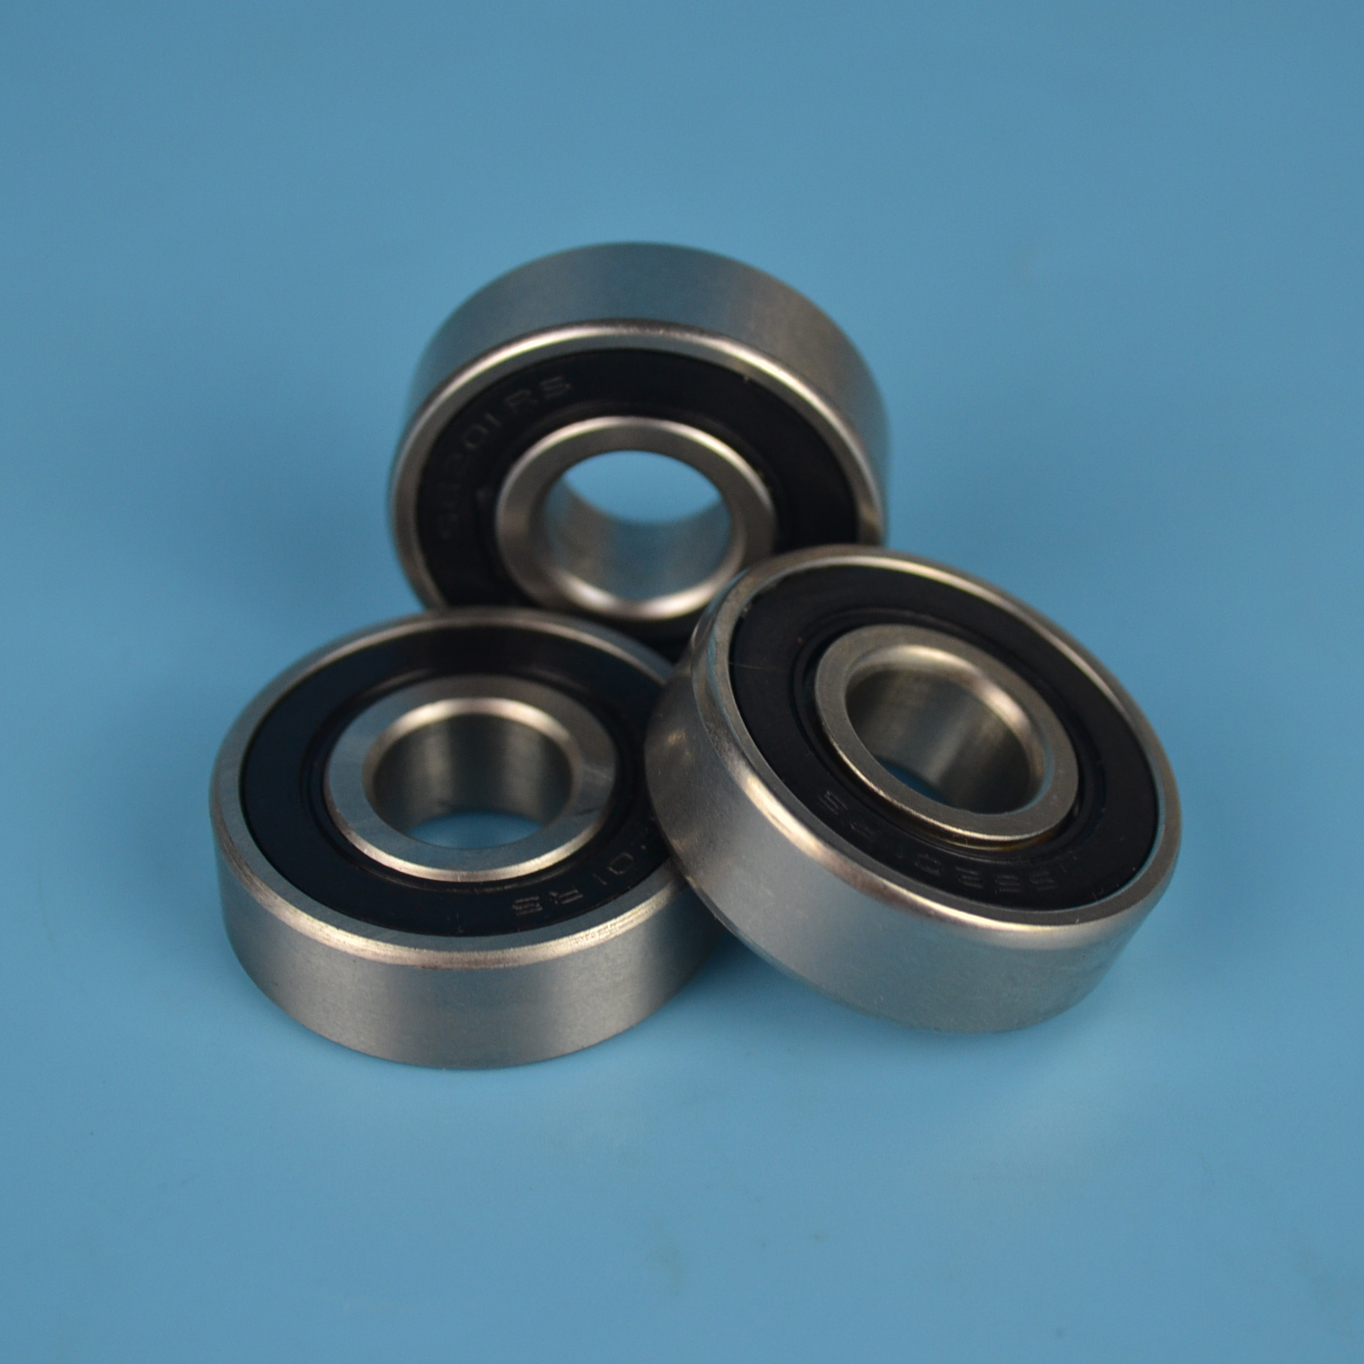 hq motorcycle parts bearing 6205 2rz sizes 25*52*15mm